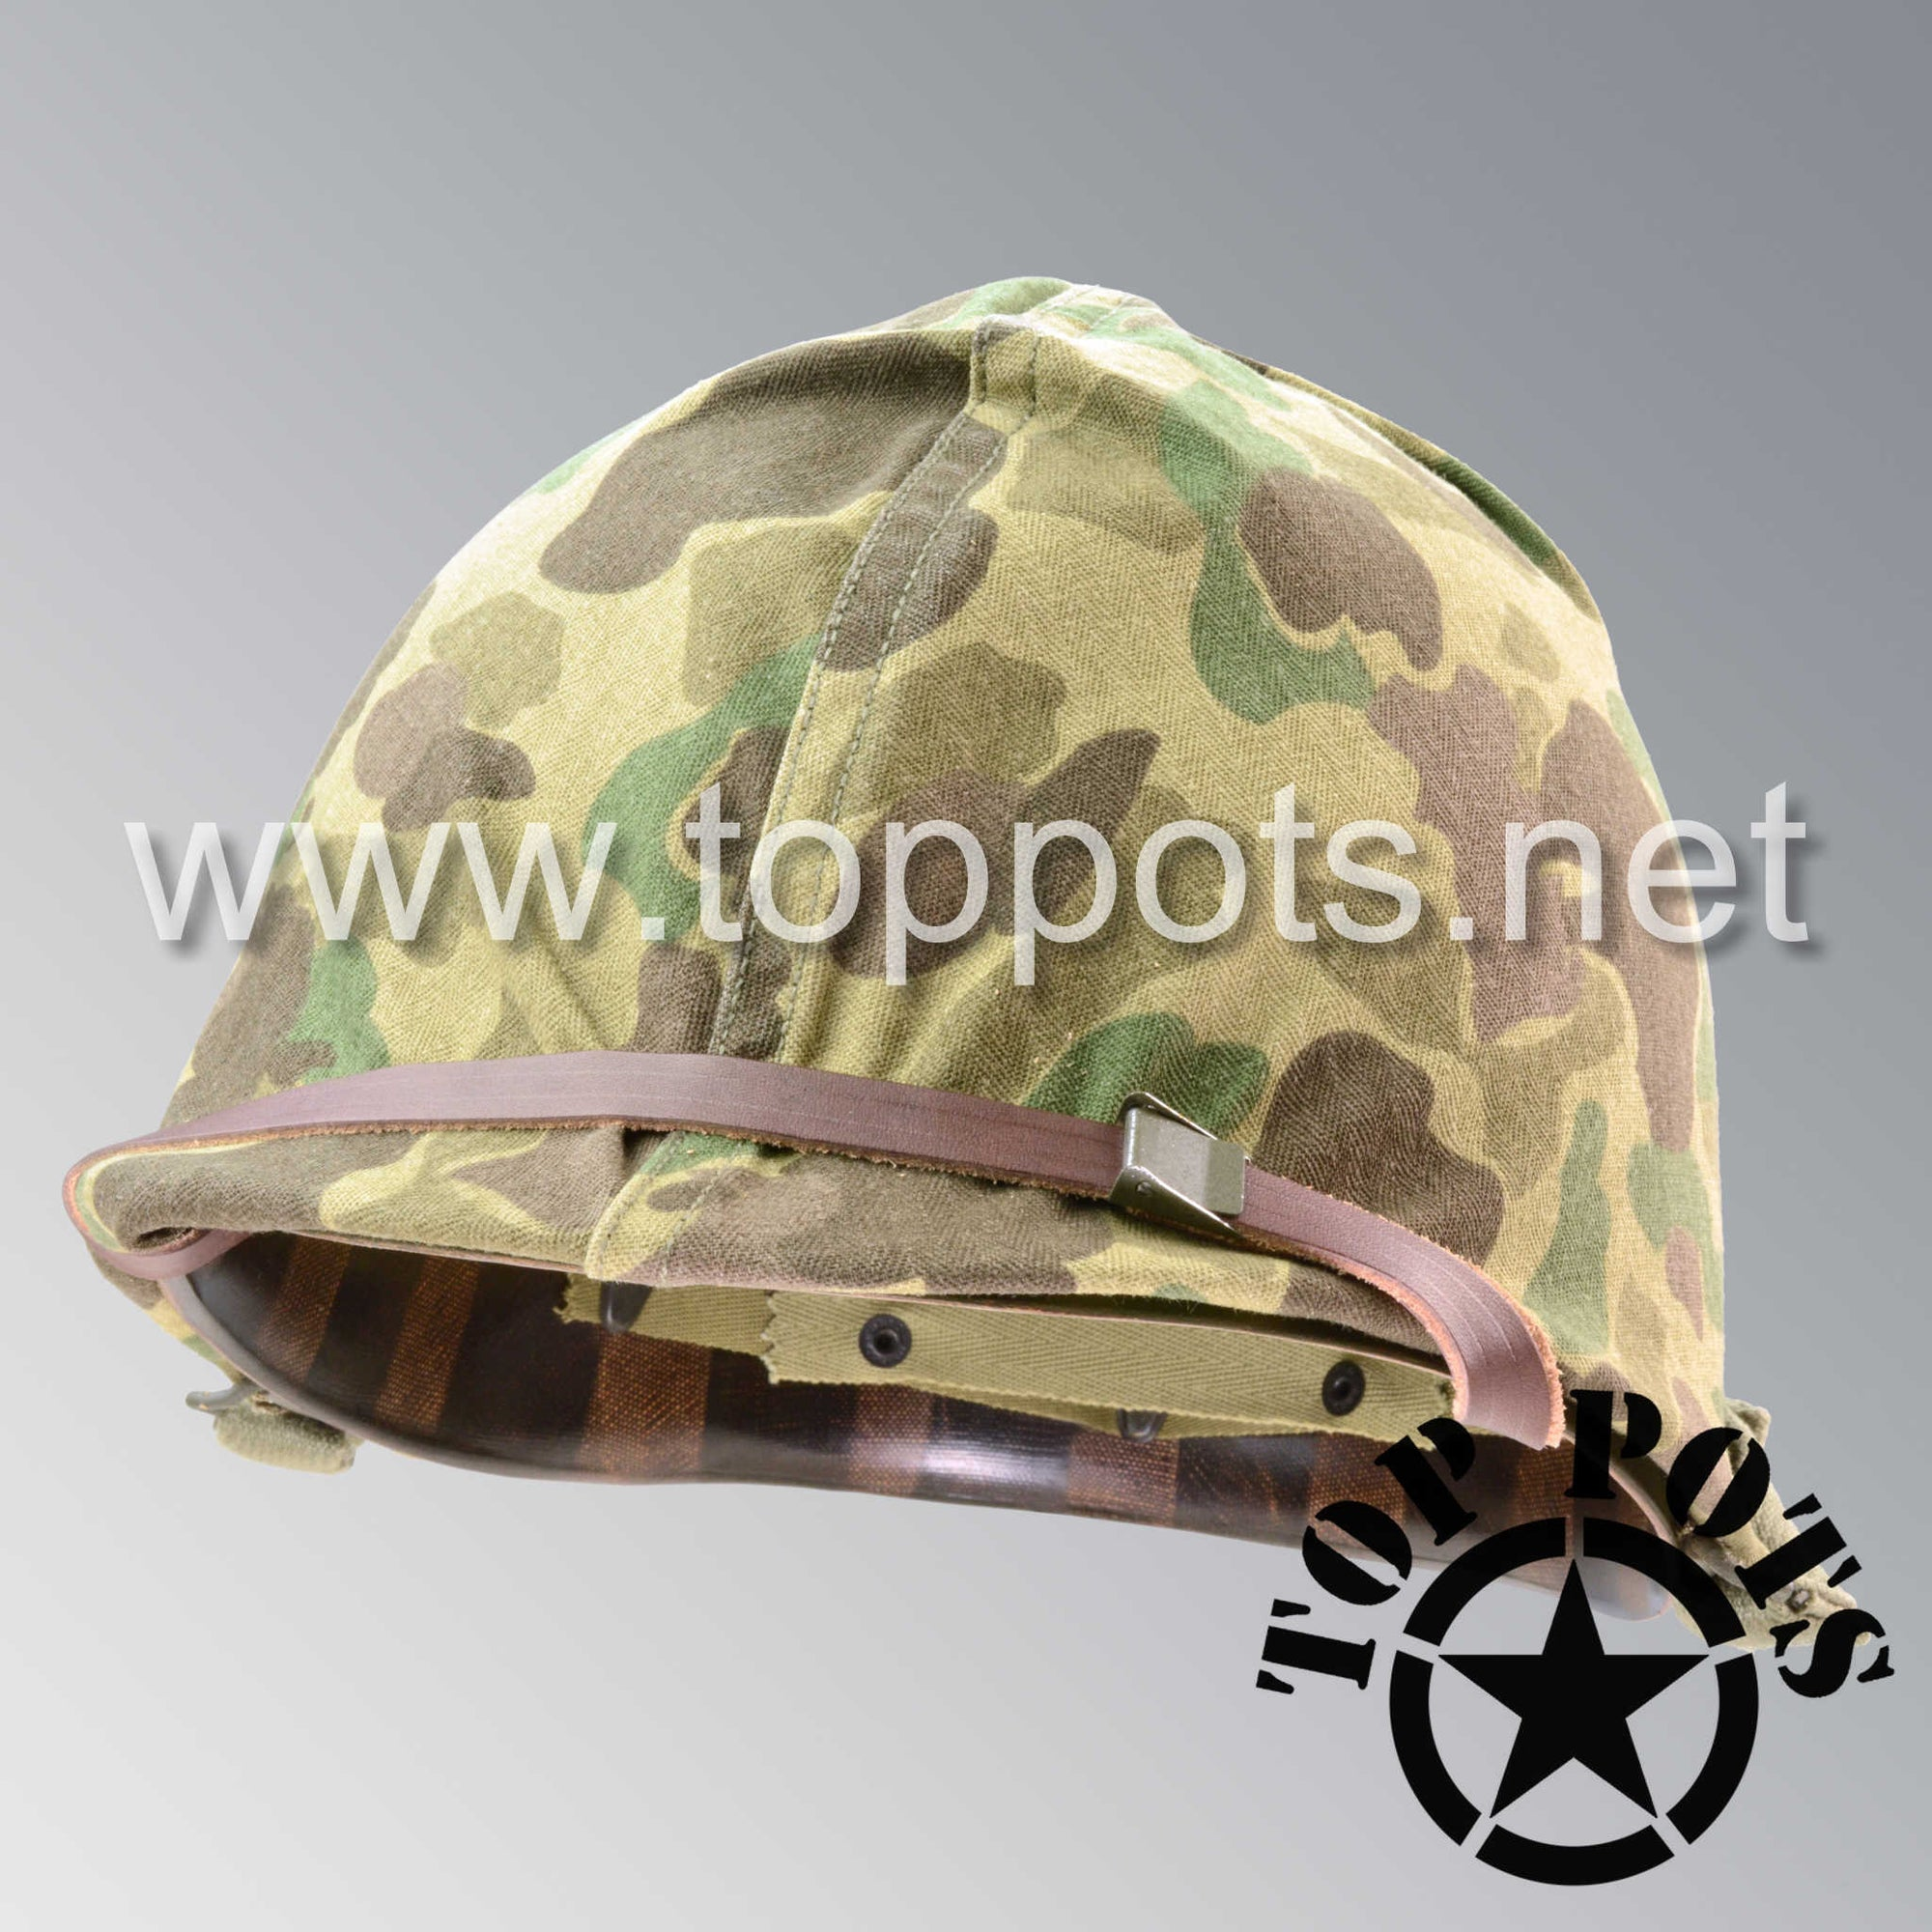 Image 2 of WWII USMC Restored Original M1 Infantry Helmet Swivel Bale Shell and Liner with Marine Corps Camouflage Cover